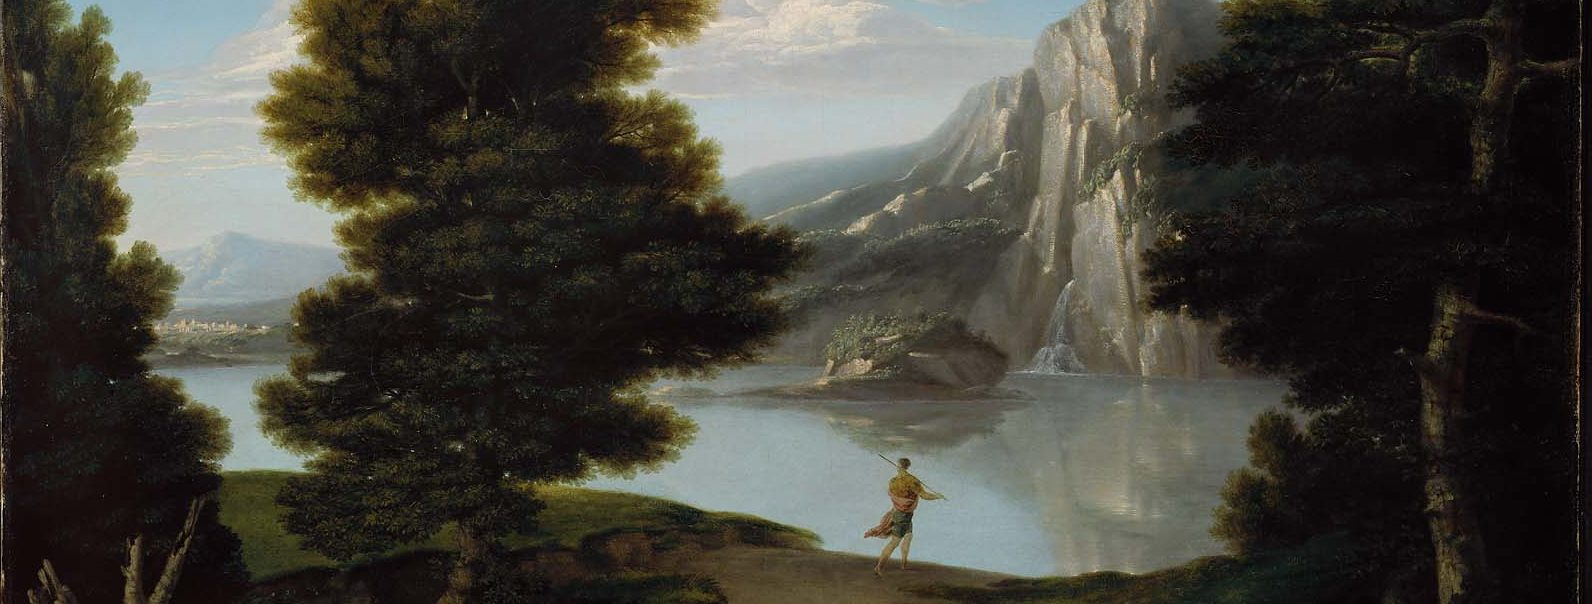 Washington Allston, Landscape with Lake (1804)